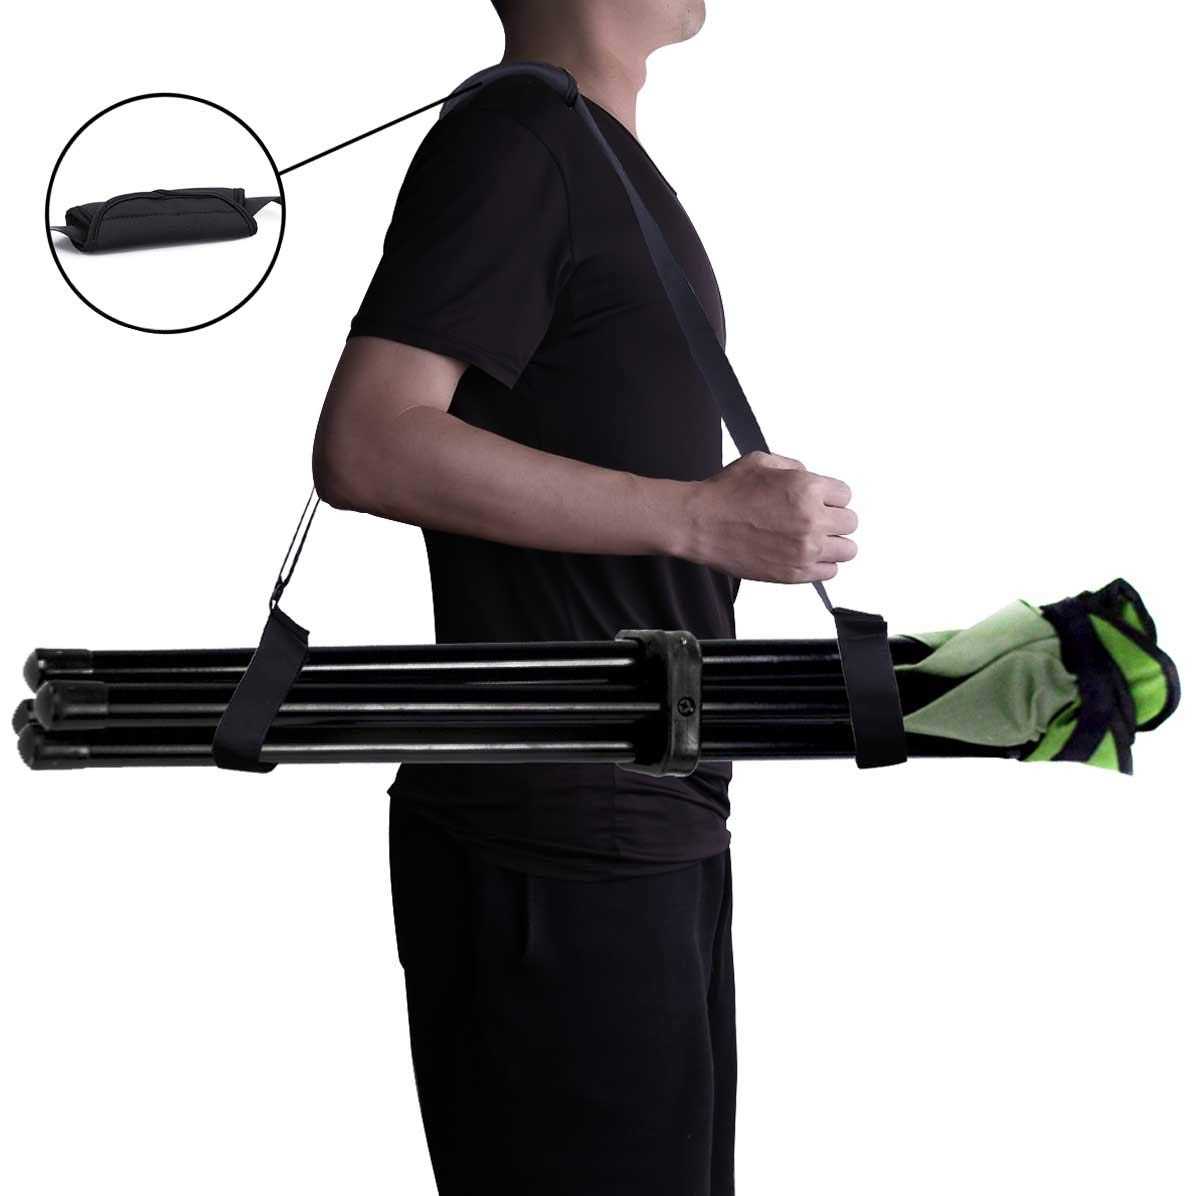 XJunion Adjustable Kick Scooter Shoulder Strap Kick Scooter Carrying Strap Universal Folding Chair Strap- No Further Damage to Your Back Chair Not Included No Scooter